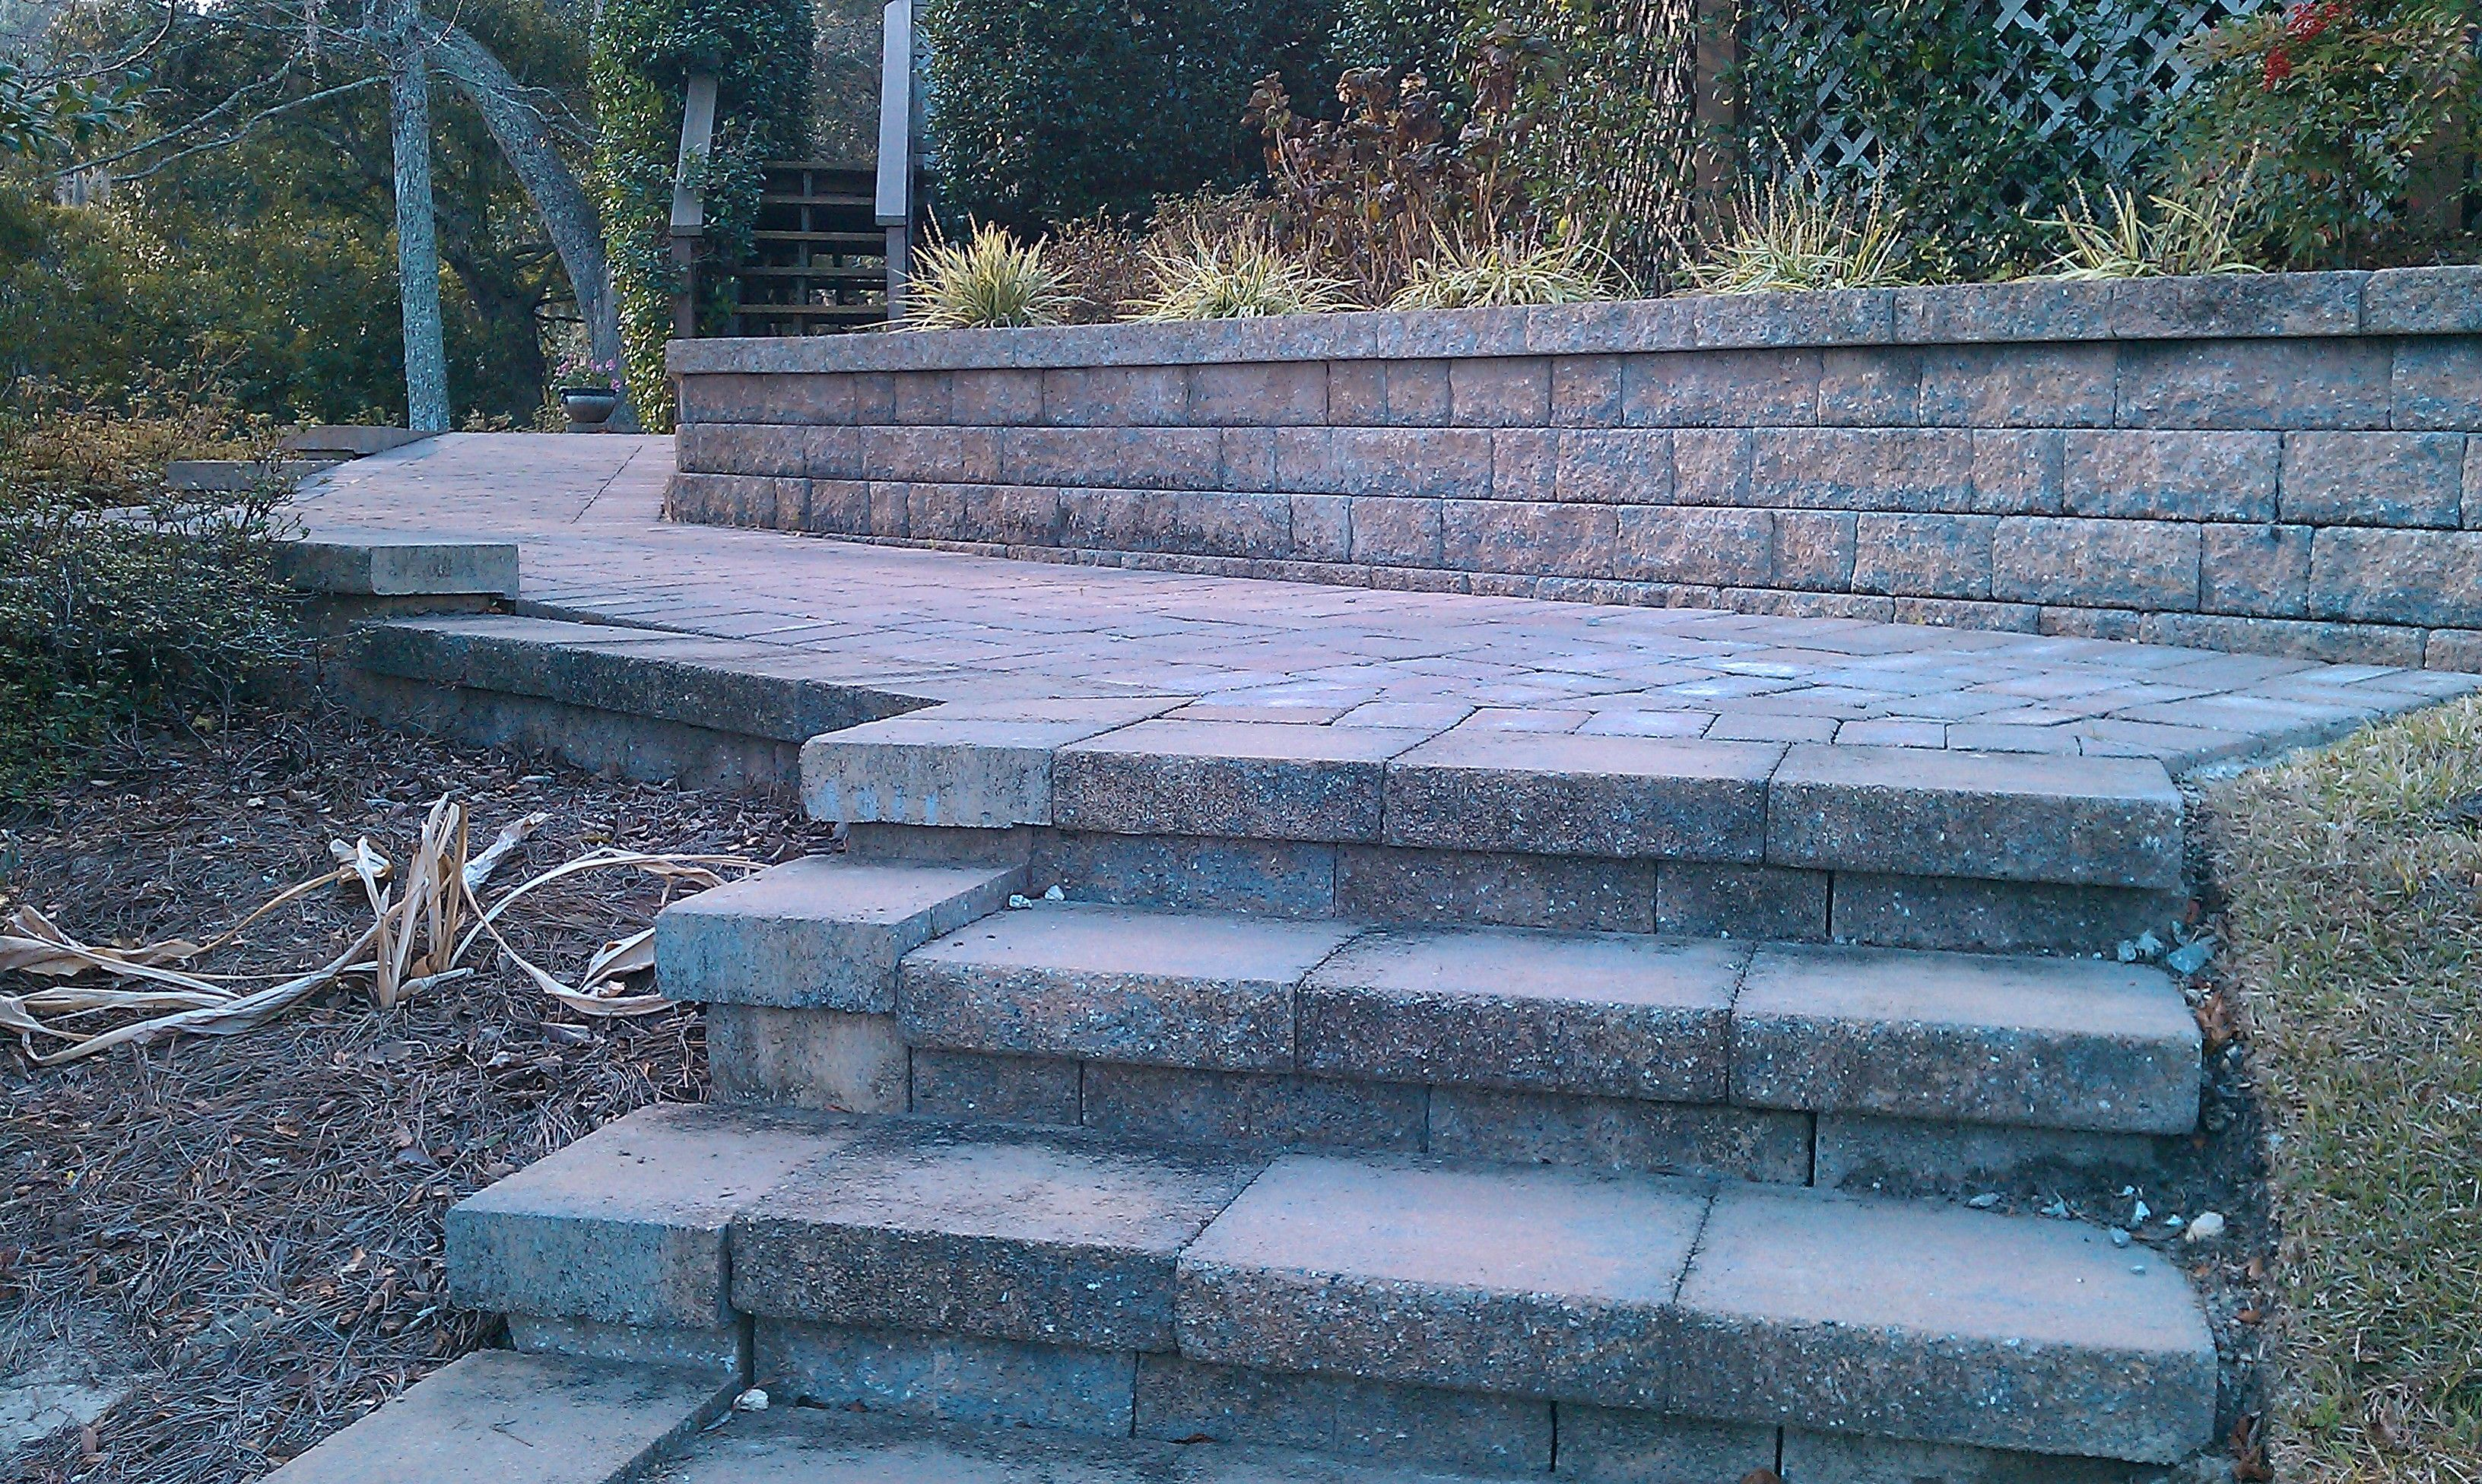 Belgard Celtik Wall Block And Cap System Was Used To Create A Two